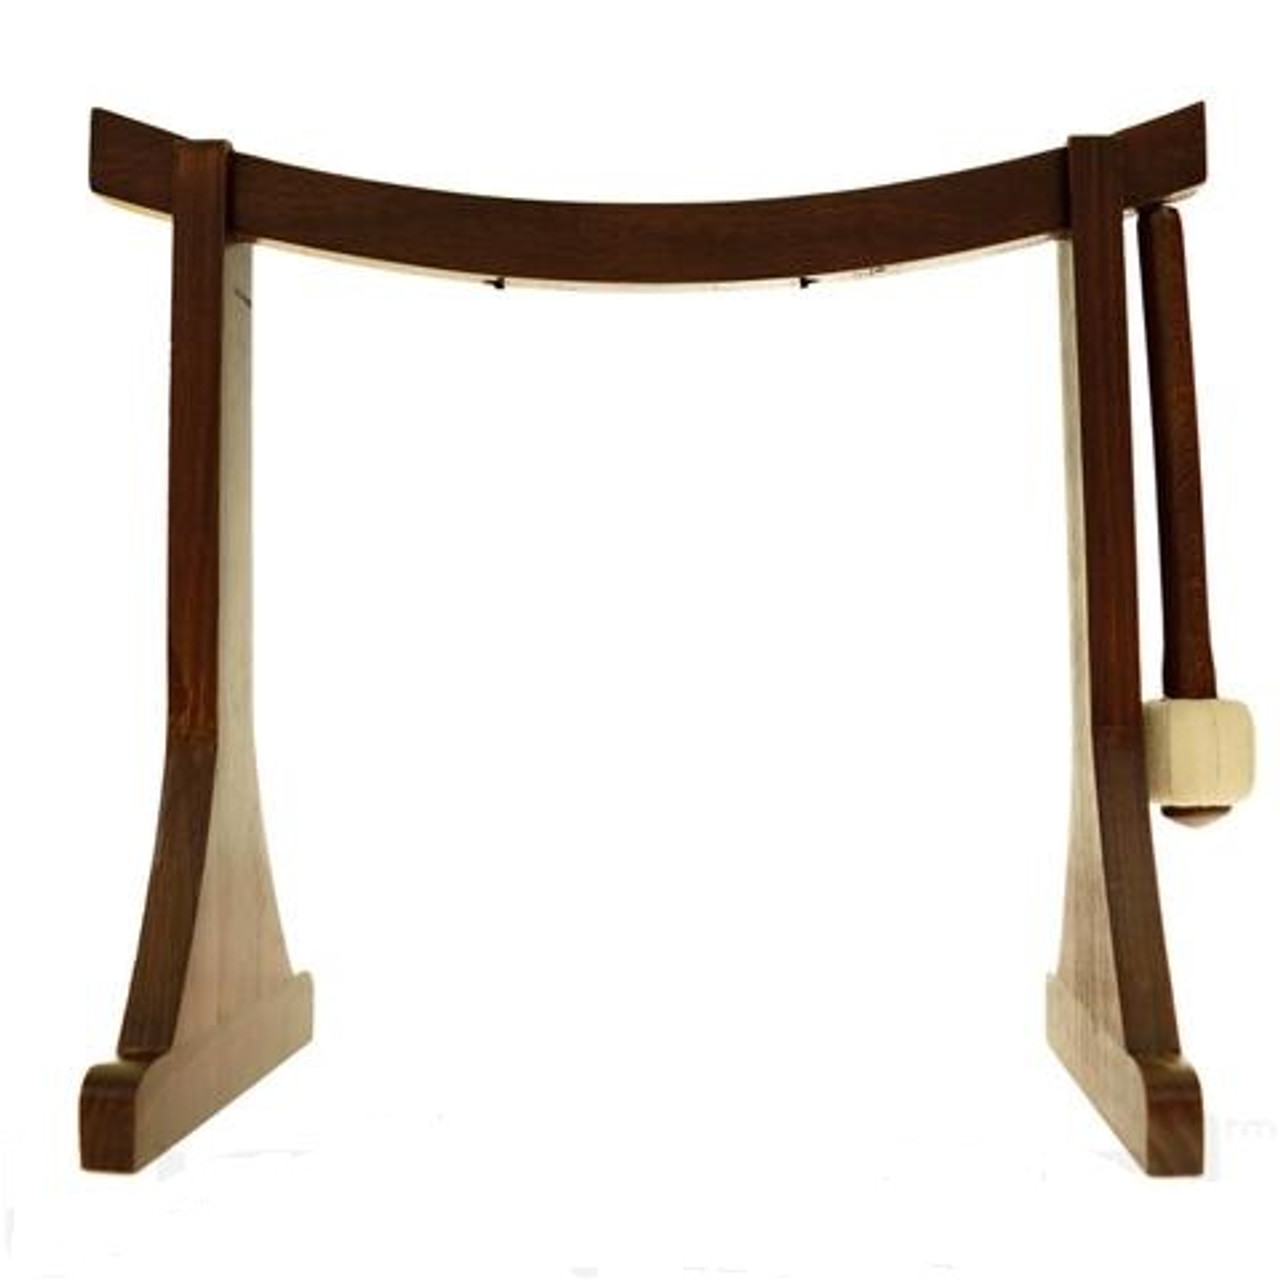 Fruity Buddha Gong Stand for 20 to 26 Gongs